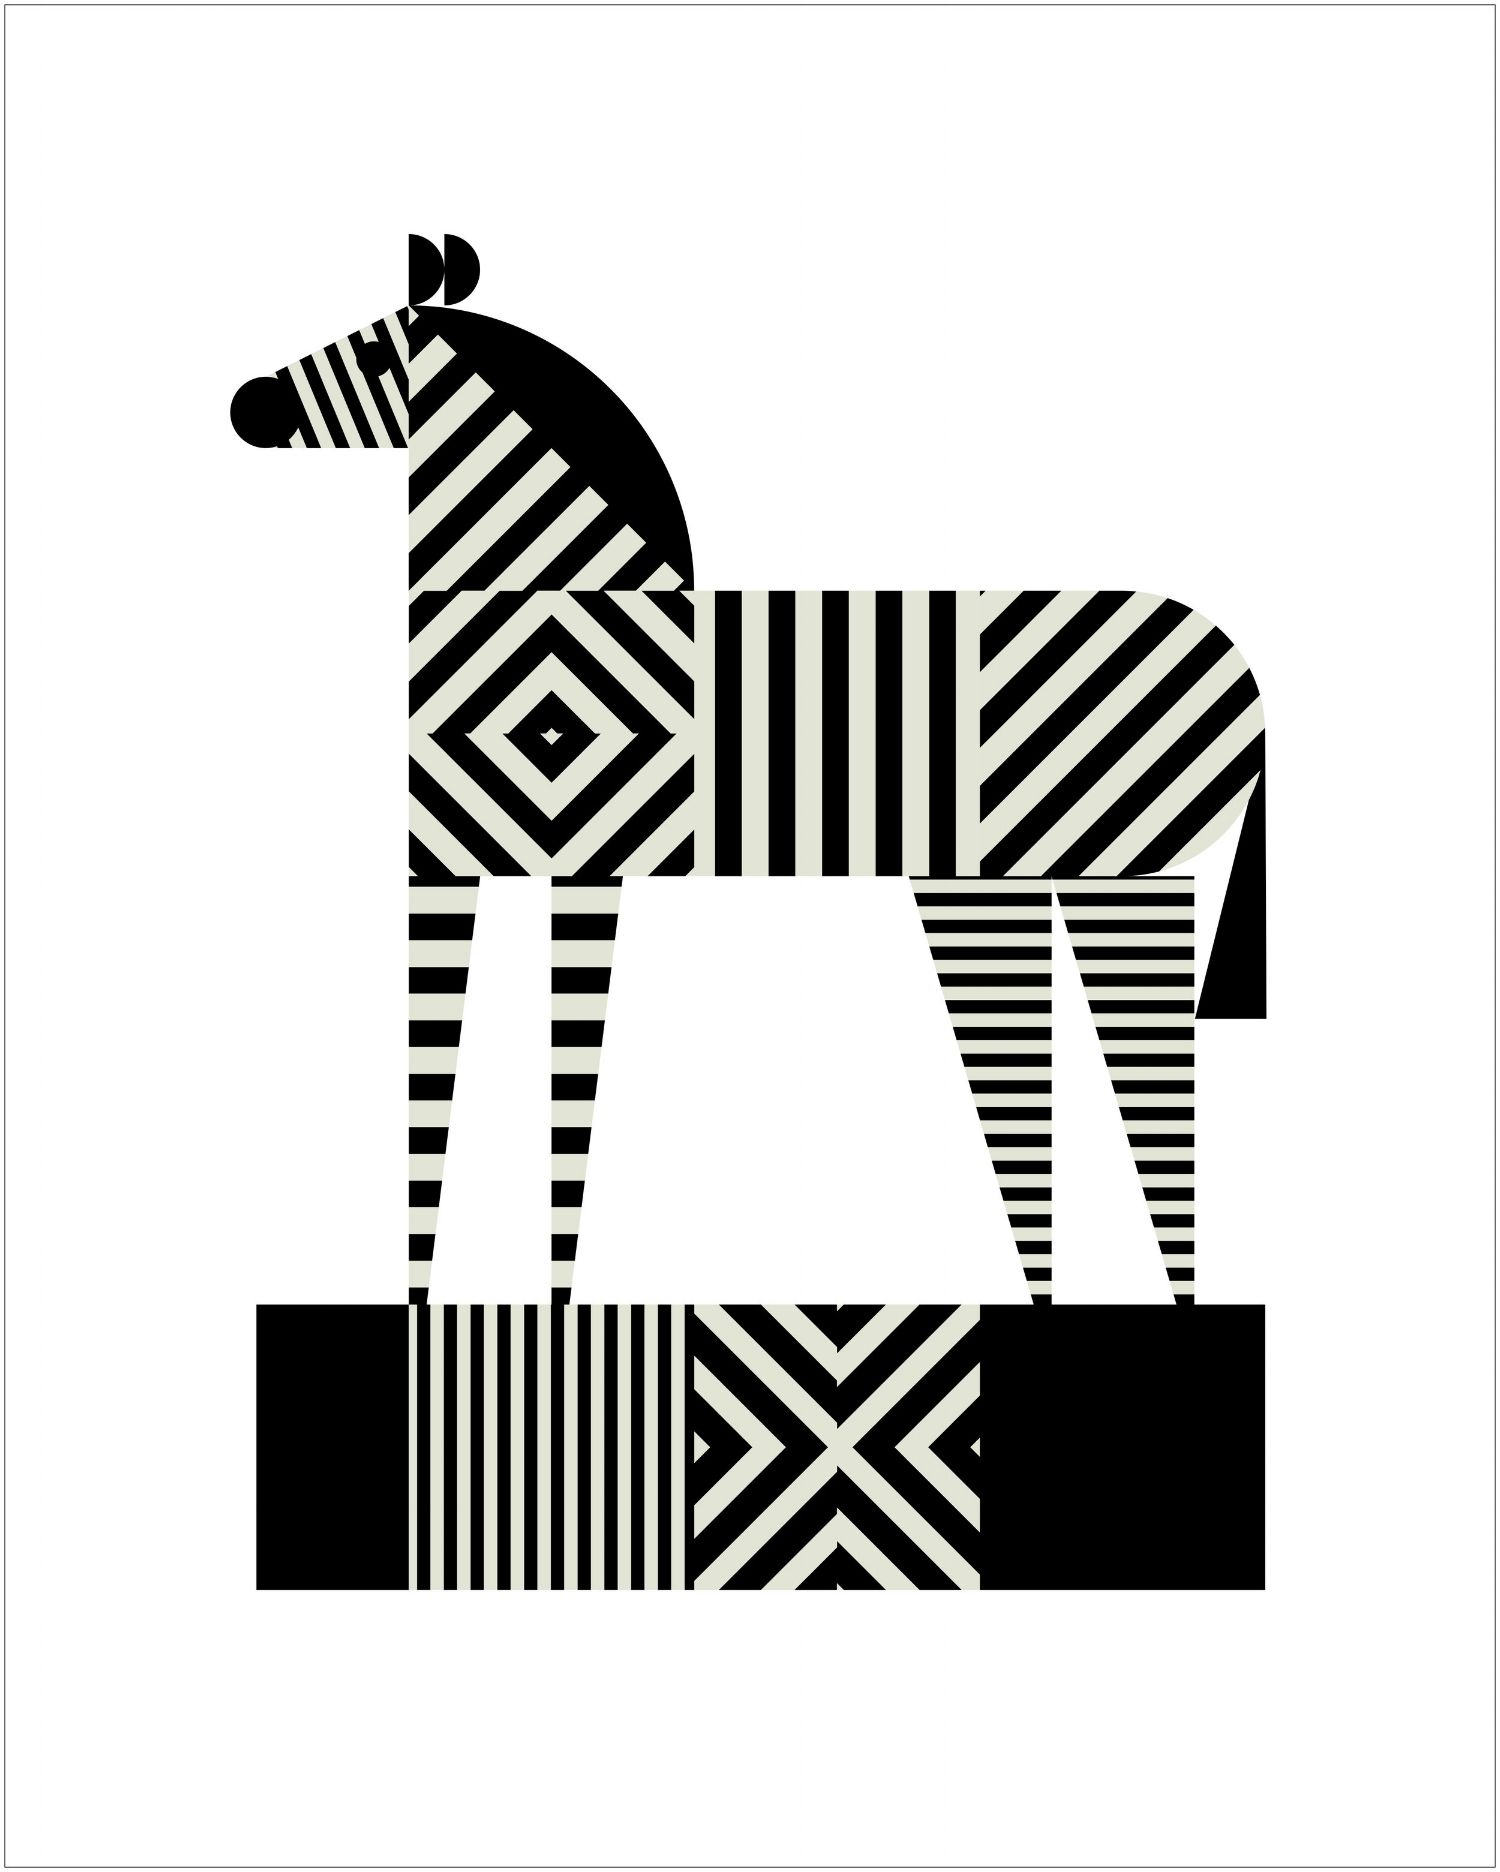 Kunstdrucke Online Pin By Carys Barron Williams On Black White Poster Mit Rahmen